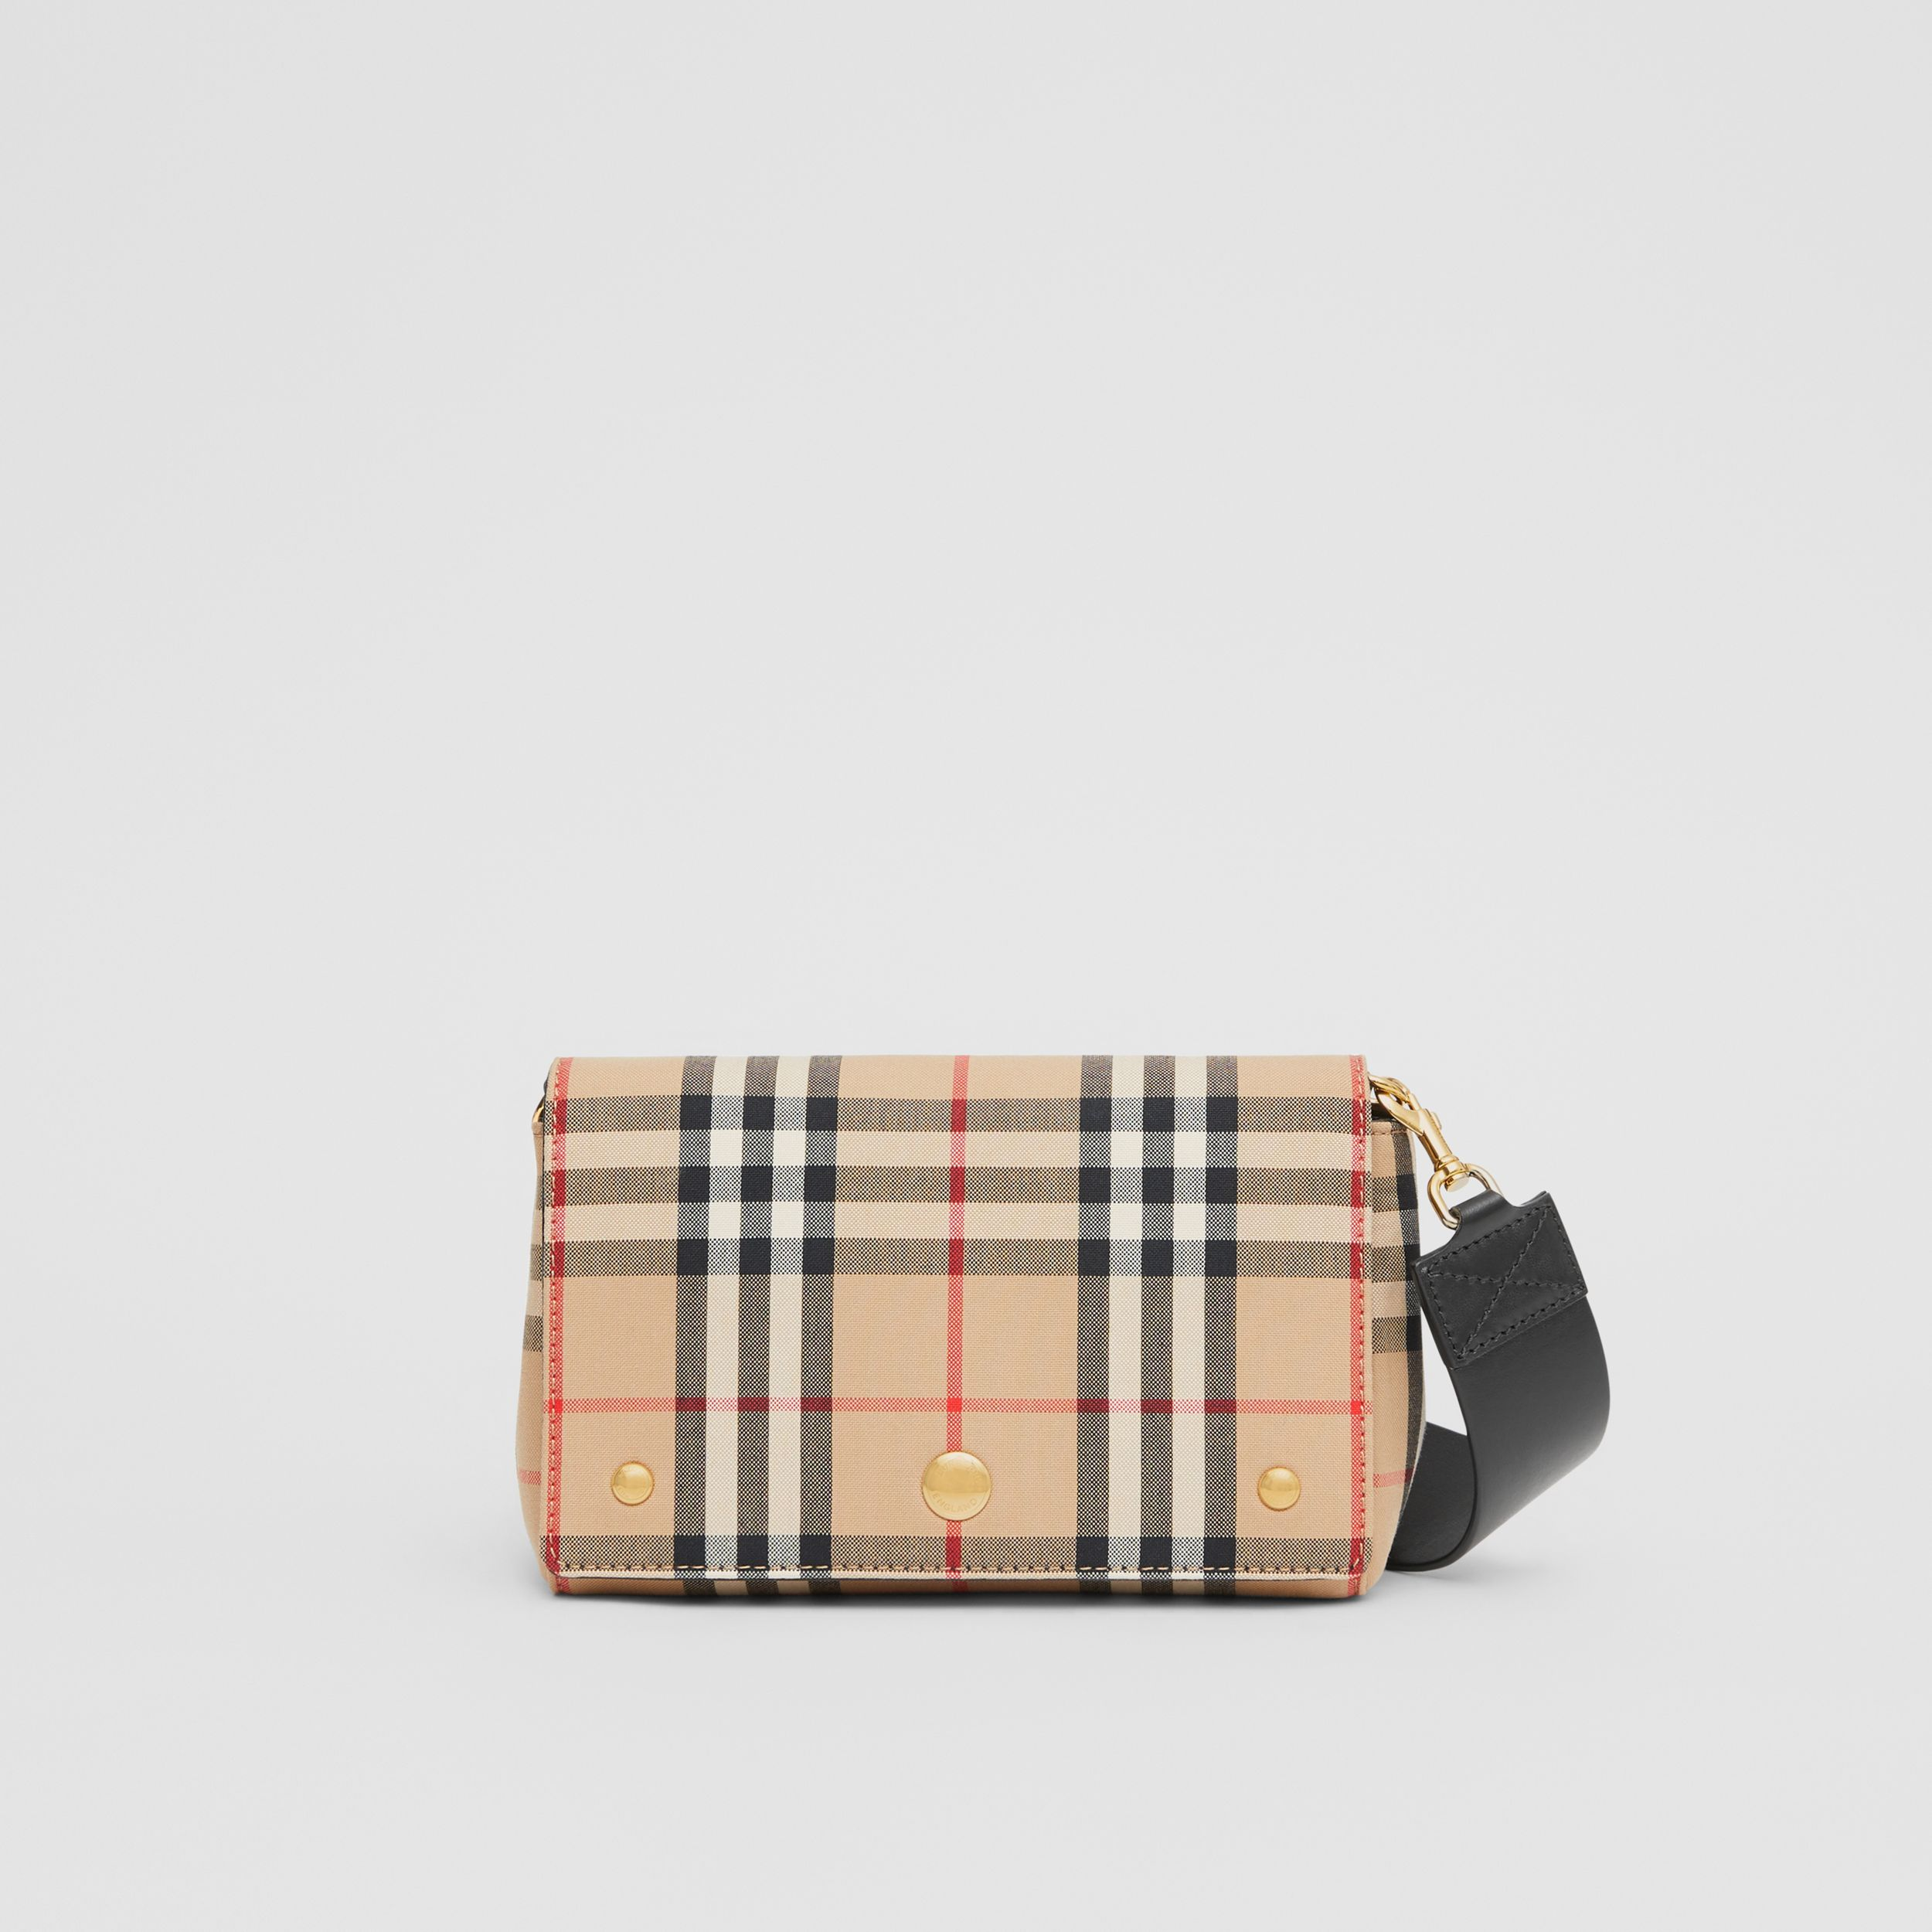 Small Vintage Check and Leather Crossbody Bag in Archive Beige/black - Women | Burberry - 1